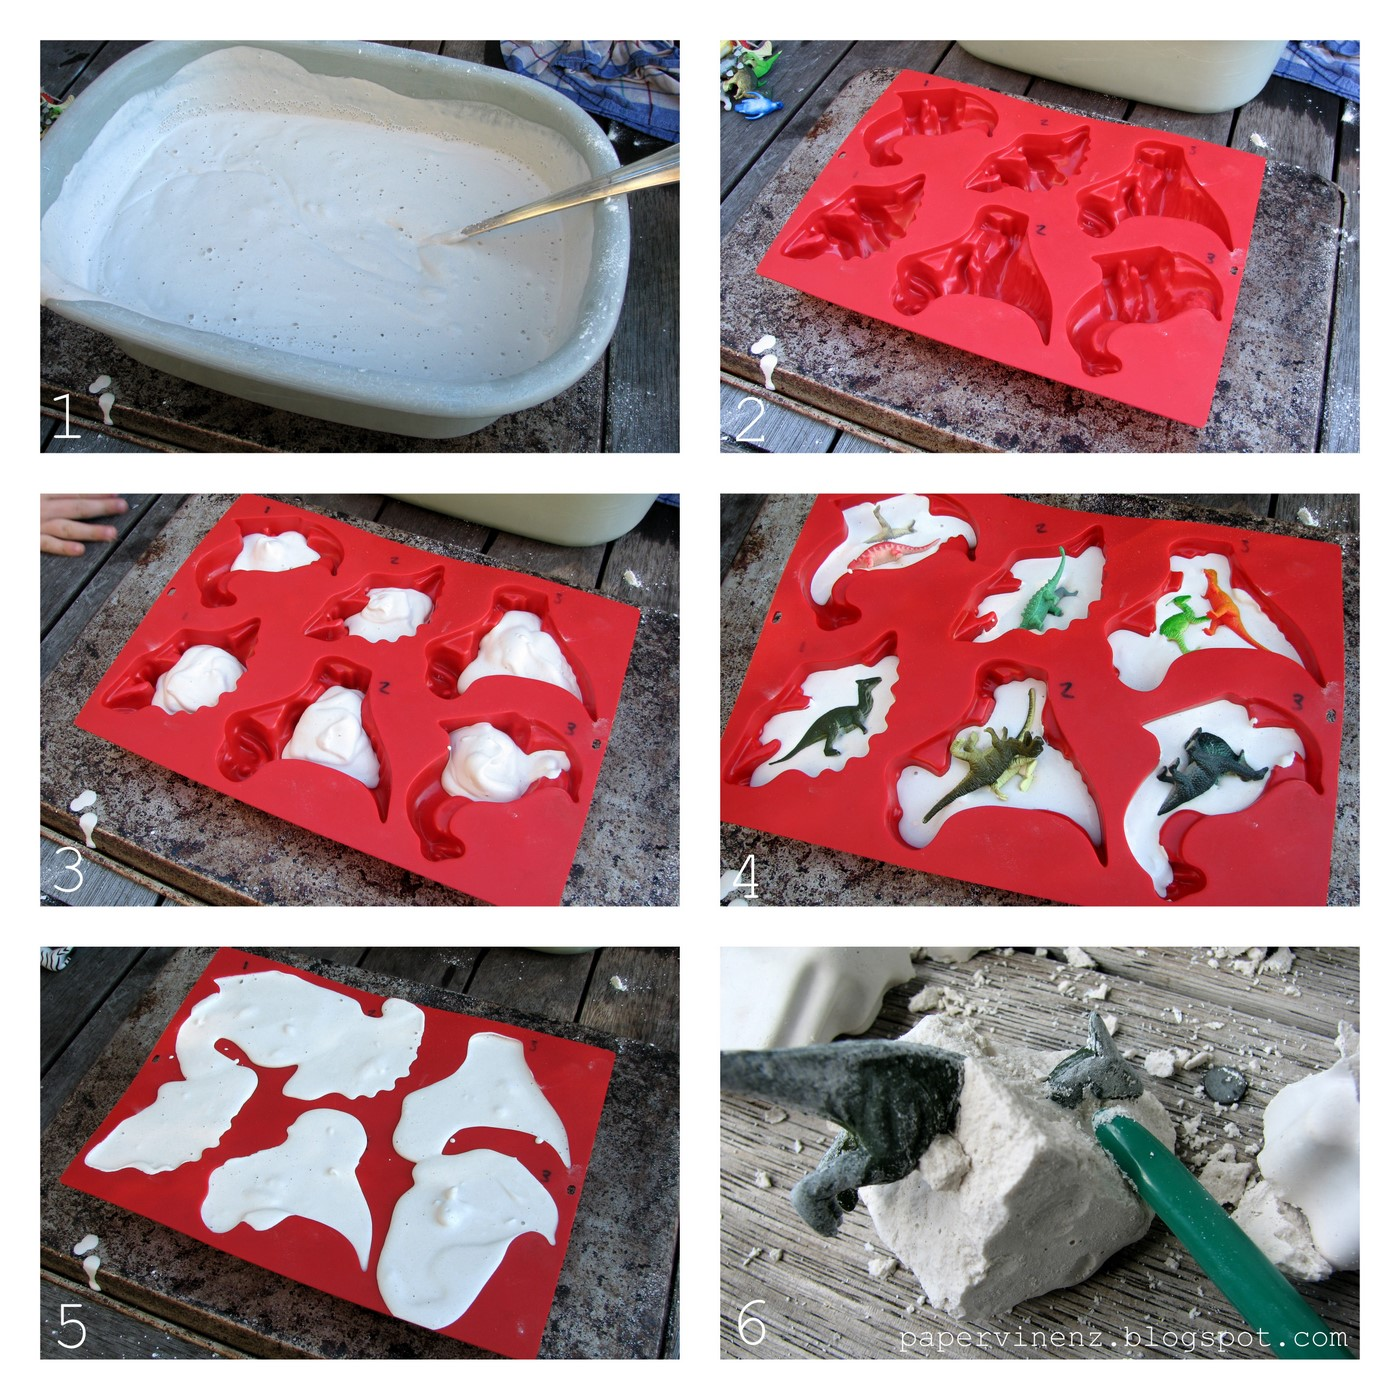 mix up the plaster of paris according to instructions place your mold ...